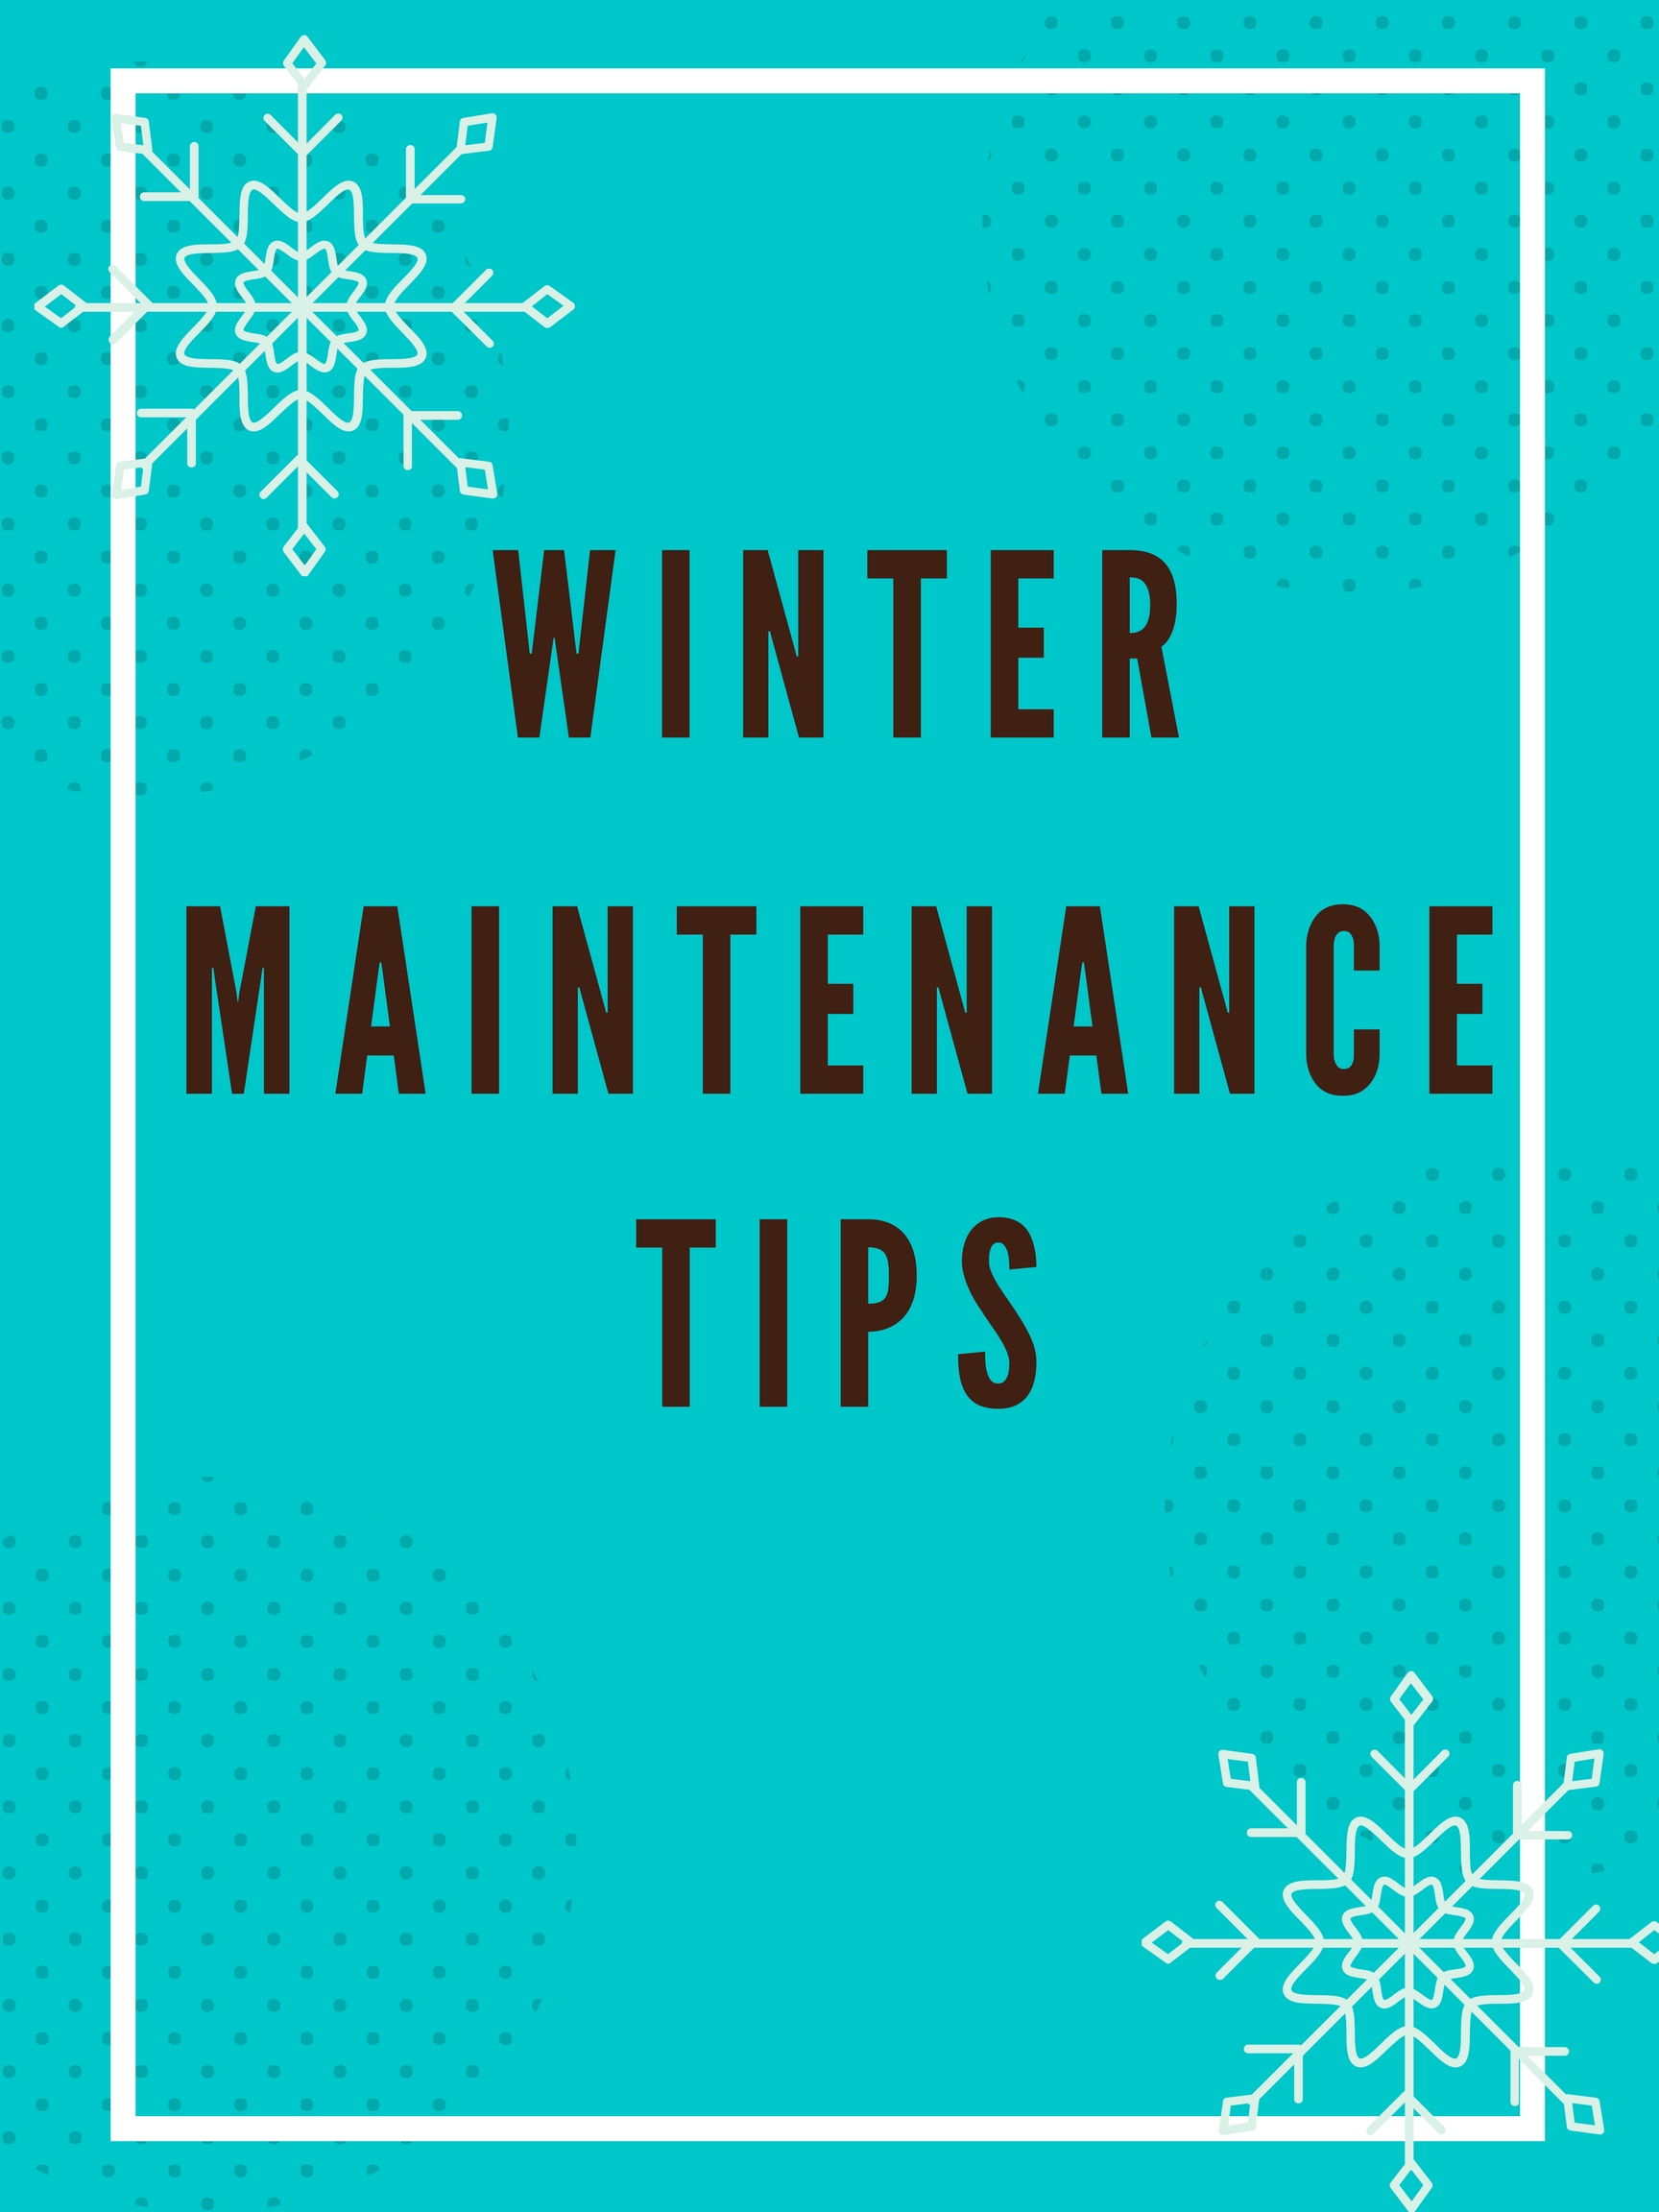 To Troubleshoot Electric Hot Water Heaters You Can Check Out This Tip